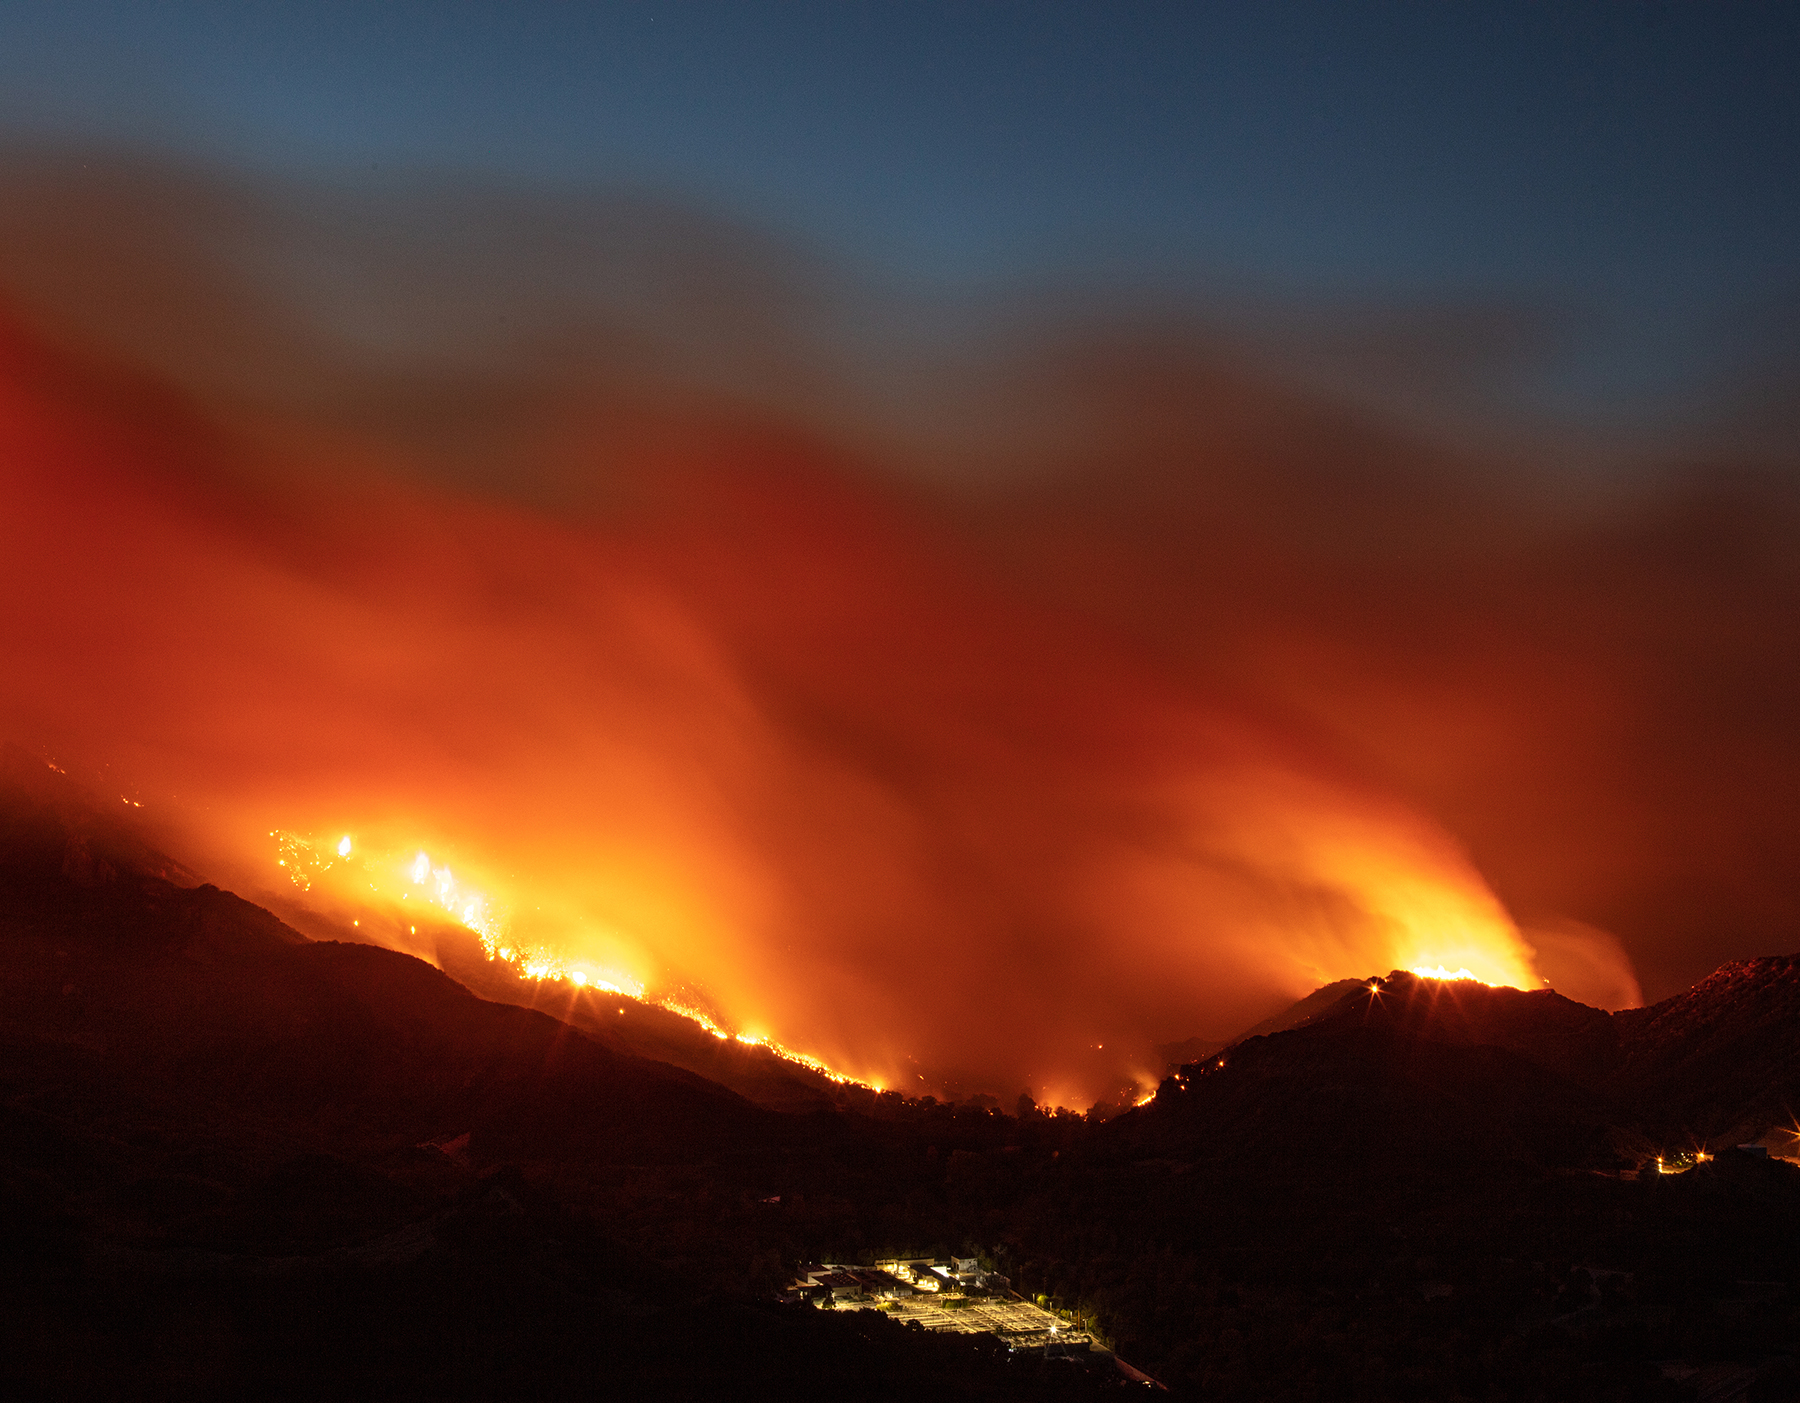 Flames from 2018's Woolsey fire lit up the night sky for nearly two months.